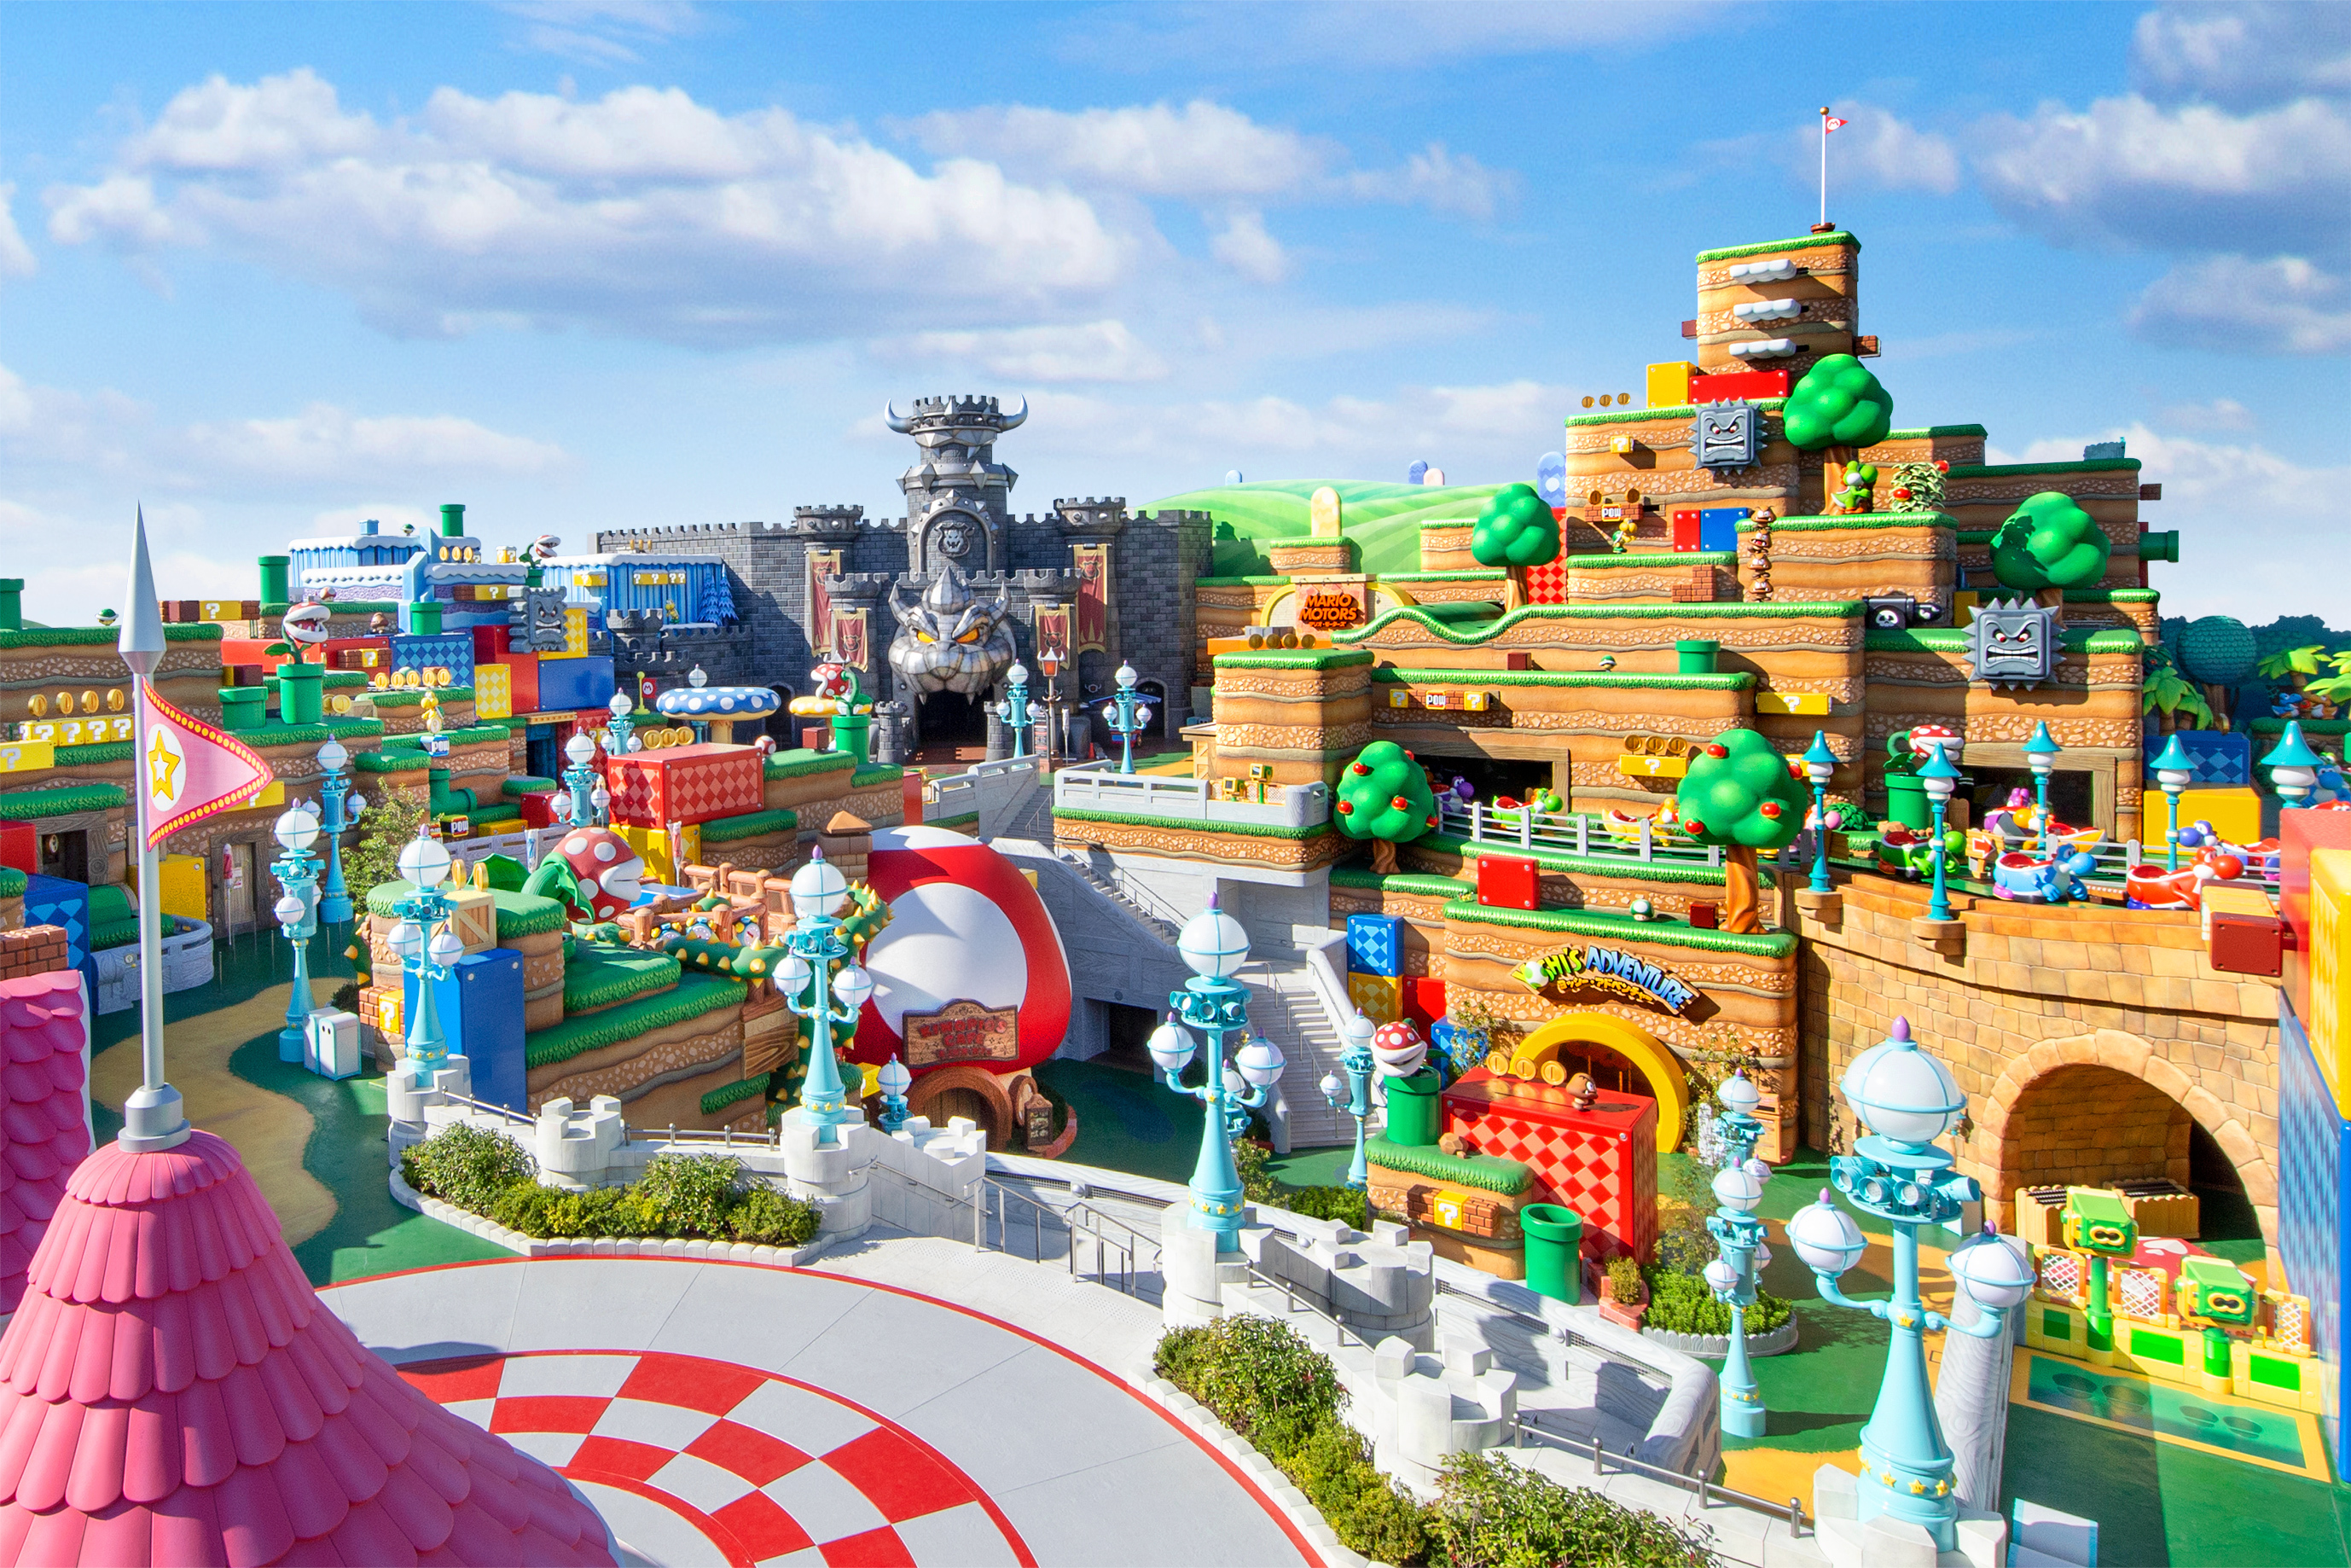 Here's your first look inside USJ's new Nintendo themed park